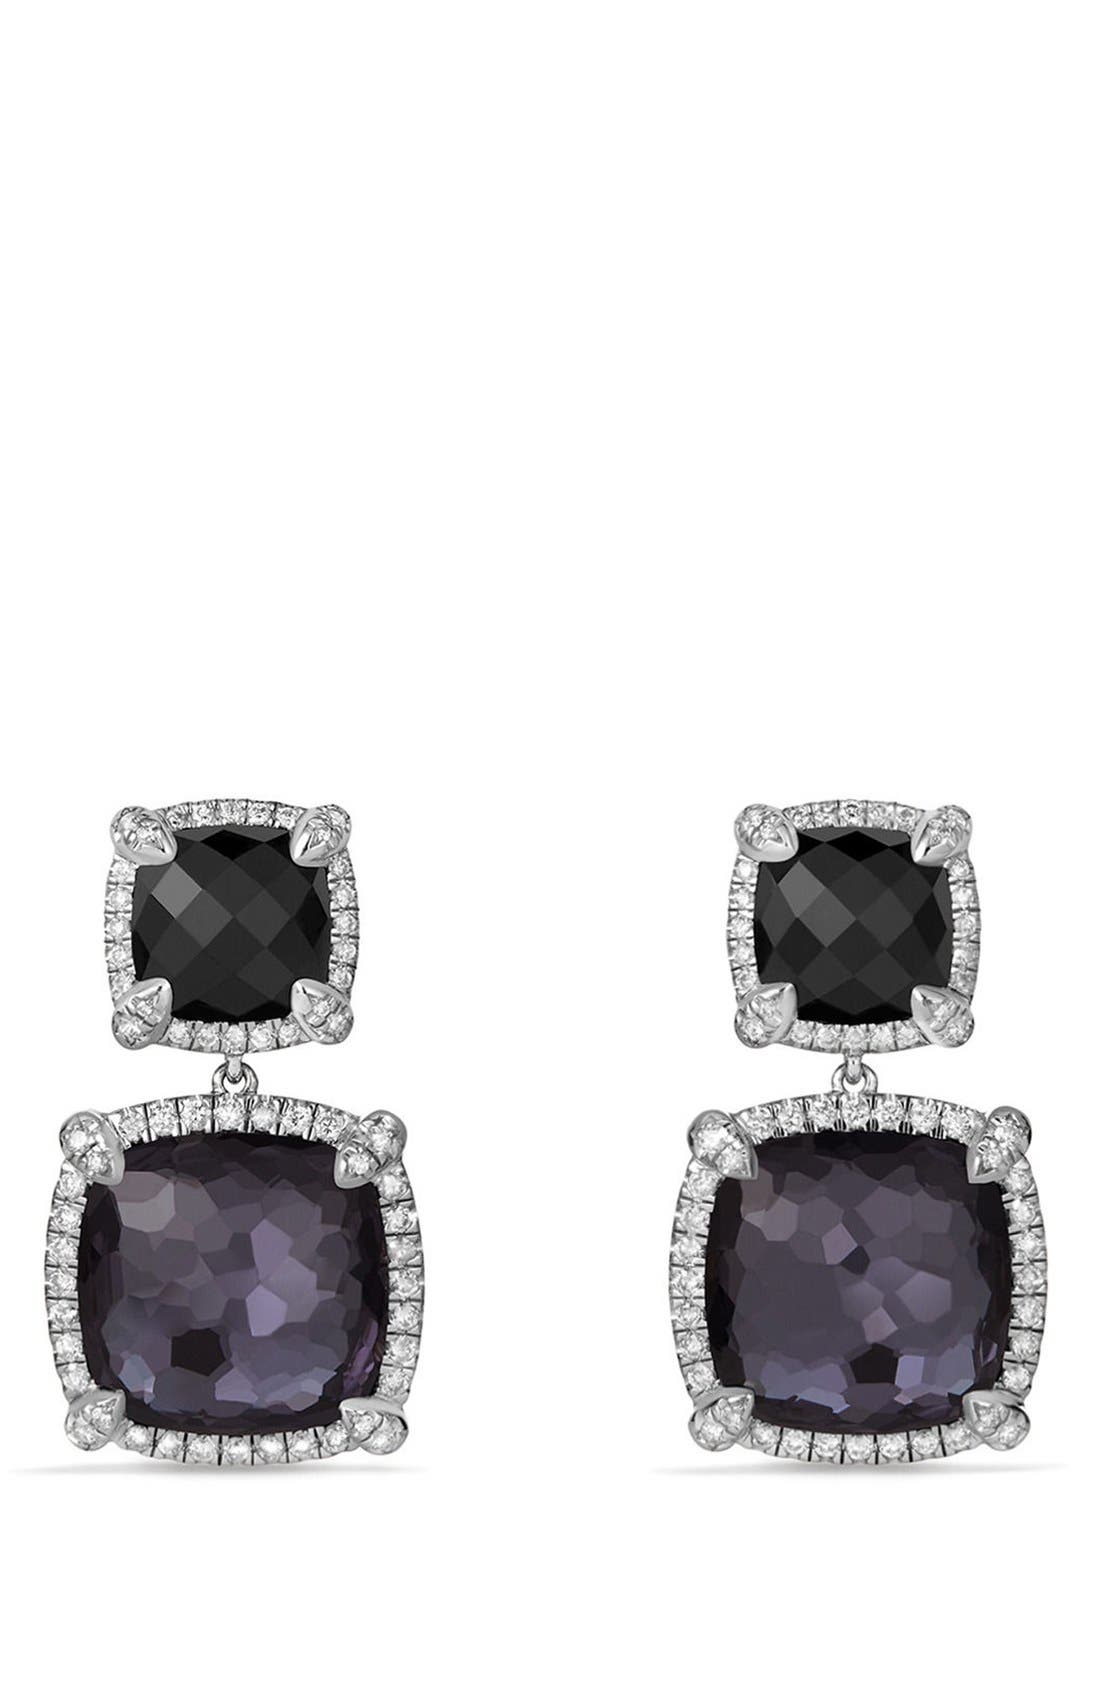 'Châtelaine' Pavé Bezel Double Drop Earrings with Diamonds,                             Main thumbnail 1, color,                             Black Onyx